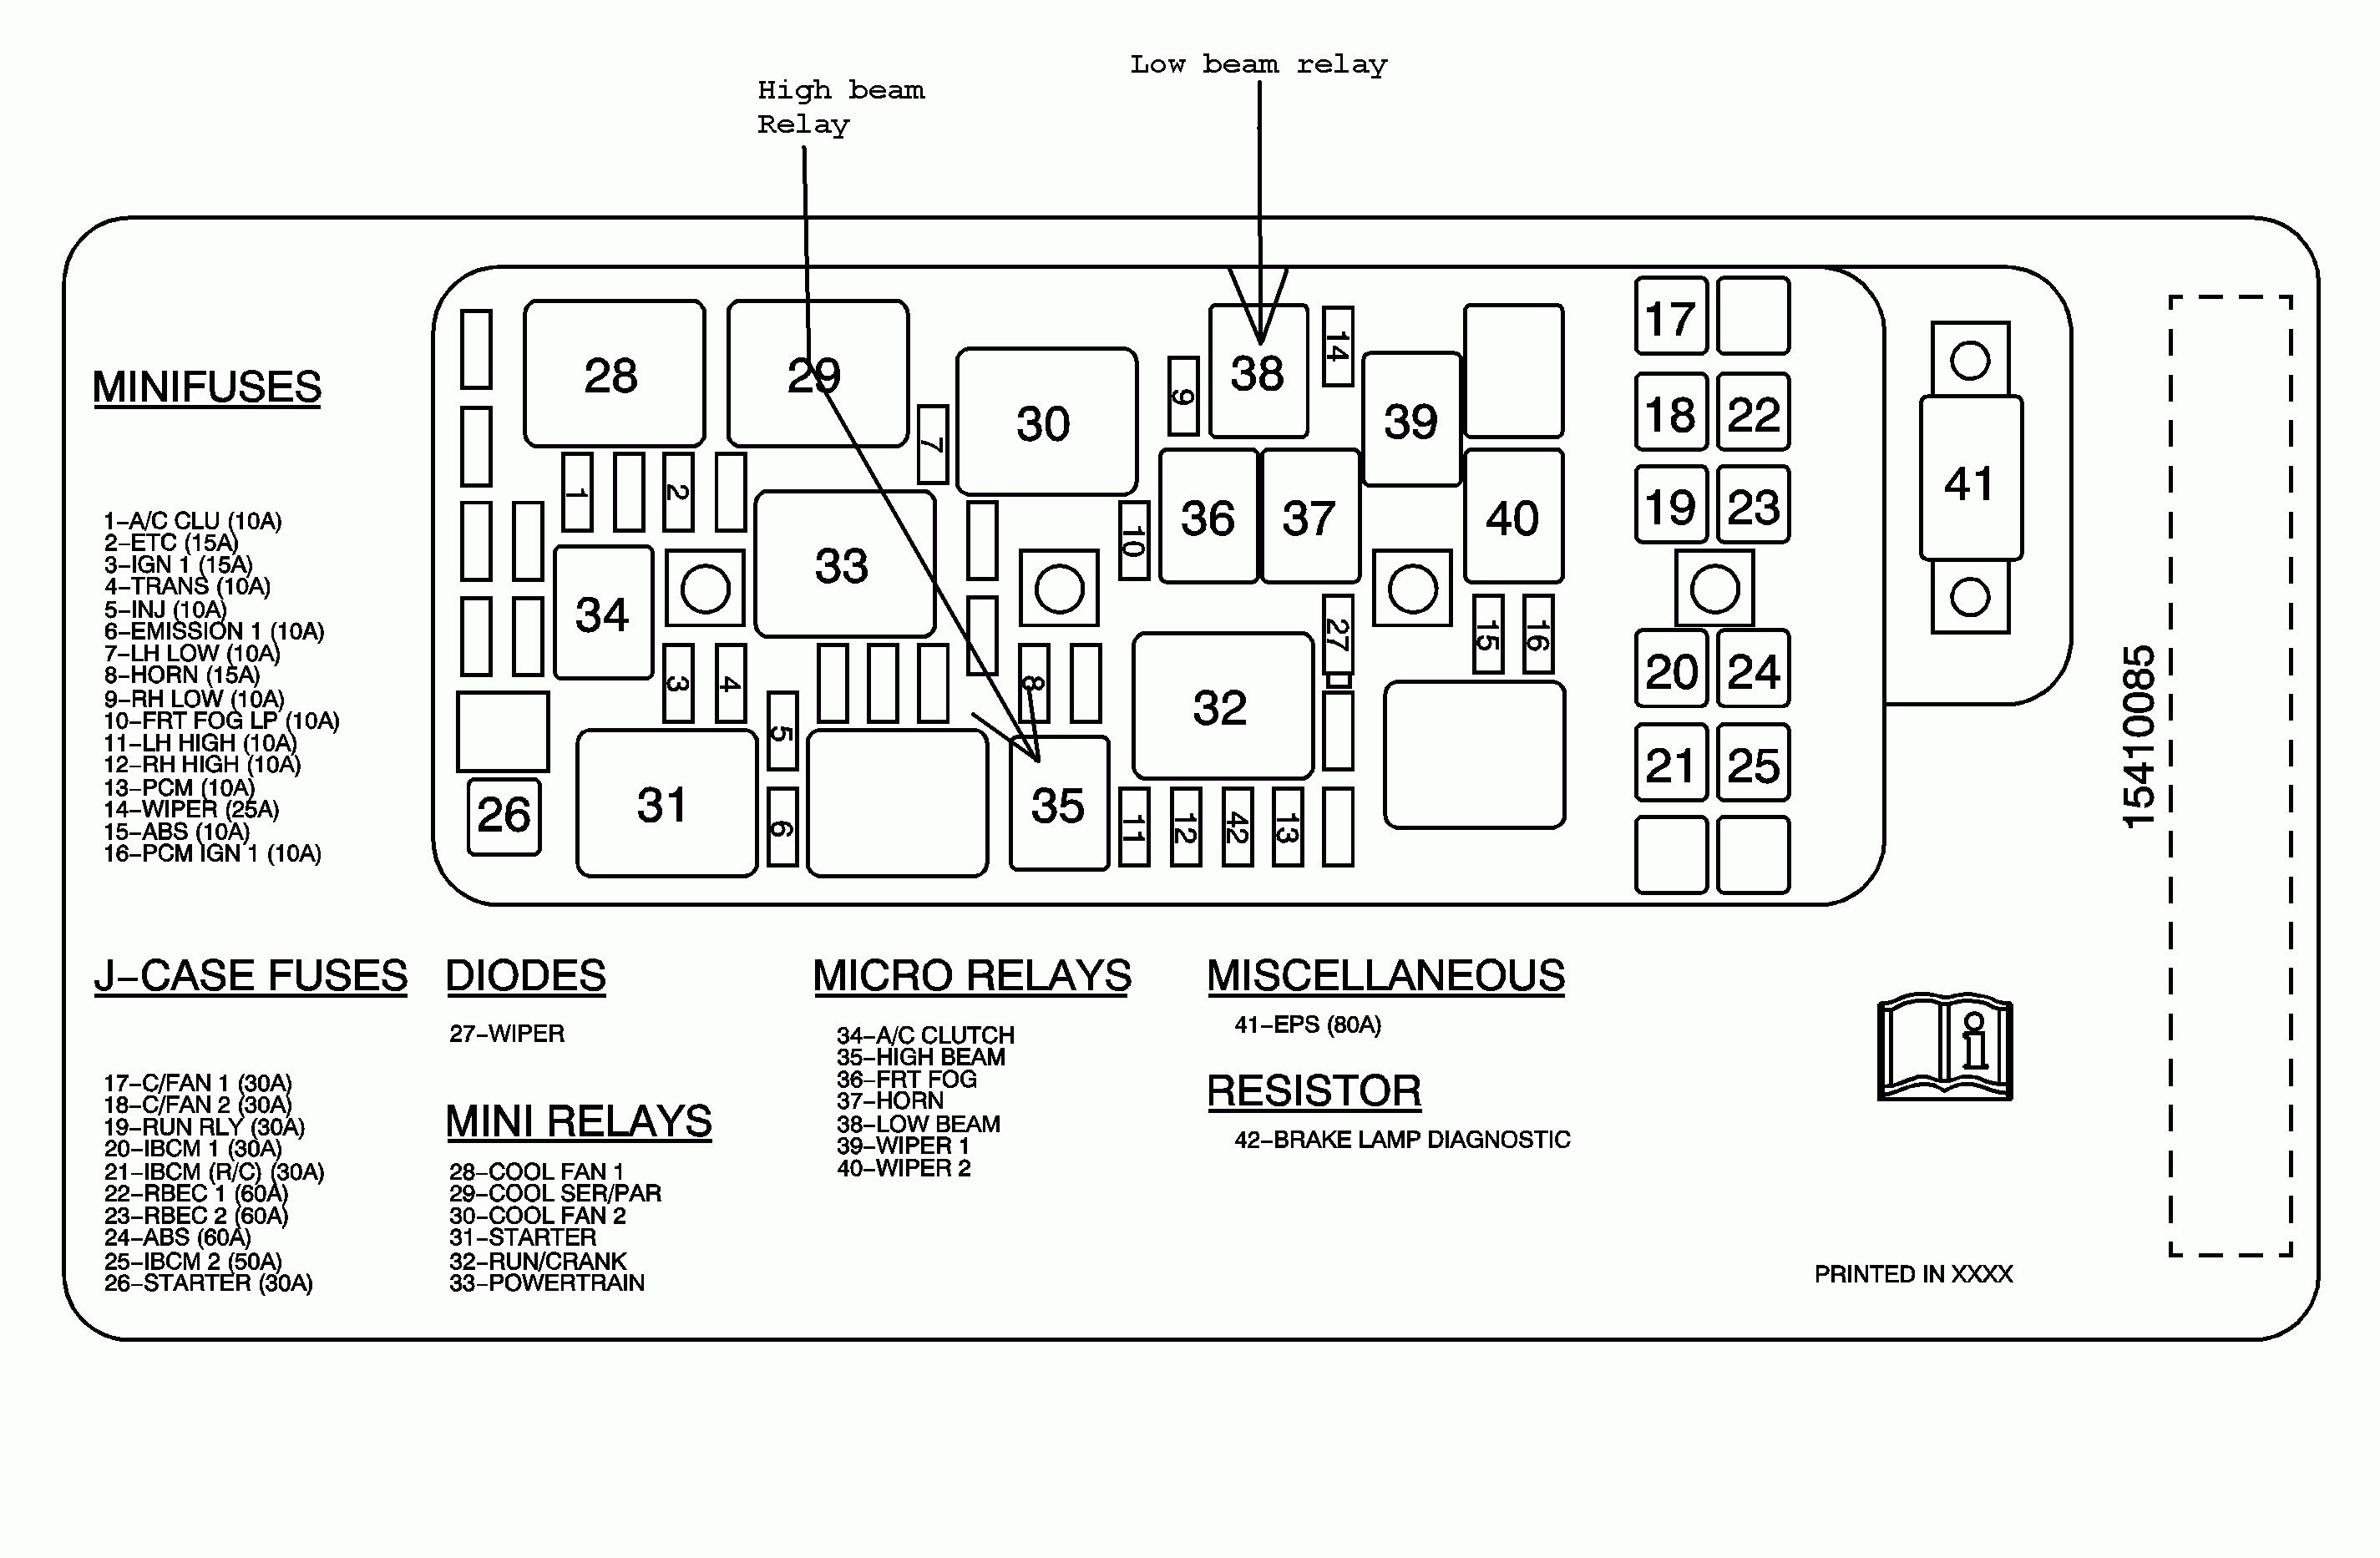 Wiring Diagram: 31 2007 Chevy Impala Radio Wiring Diagram